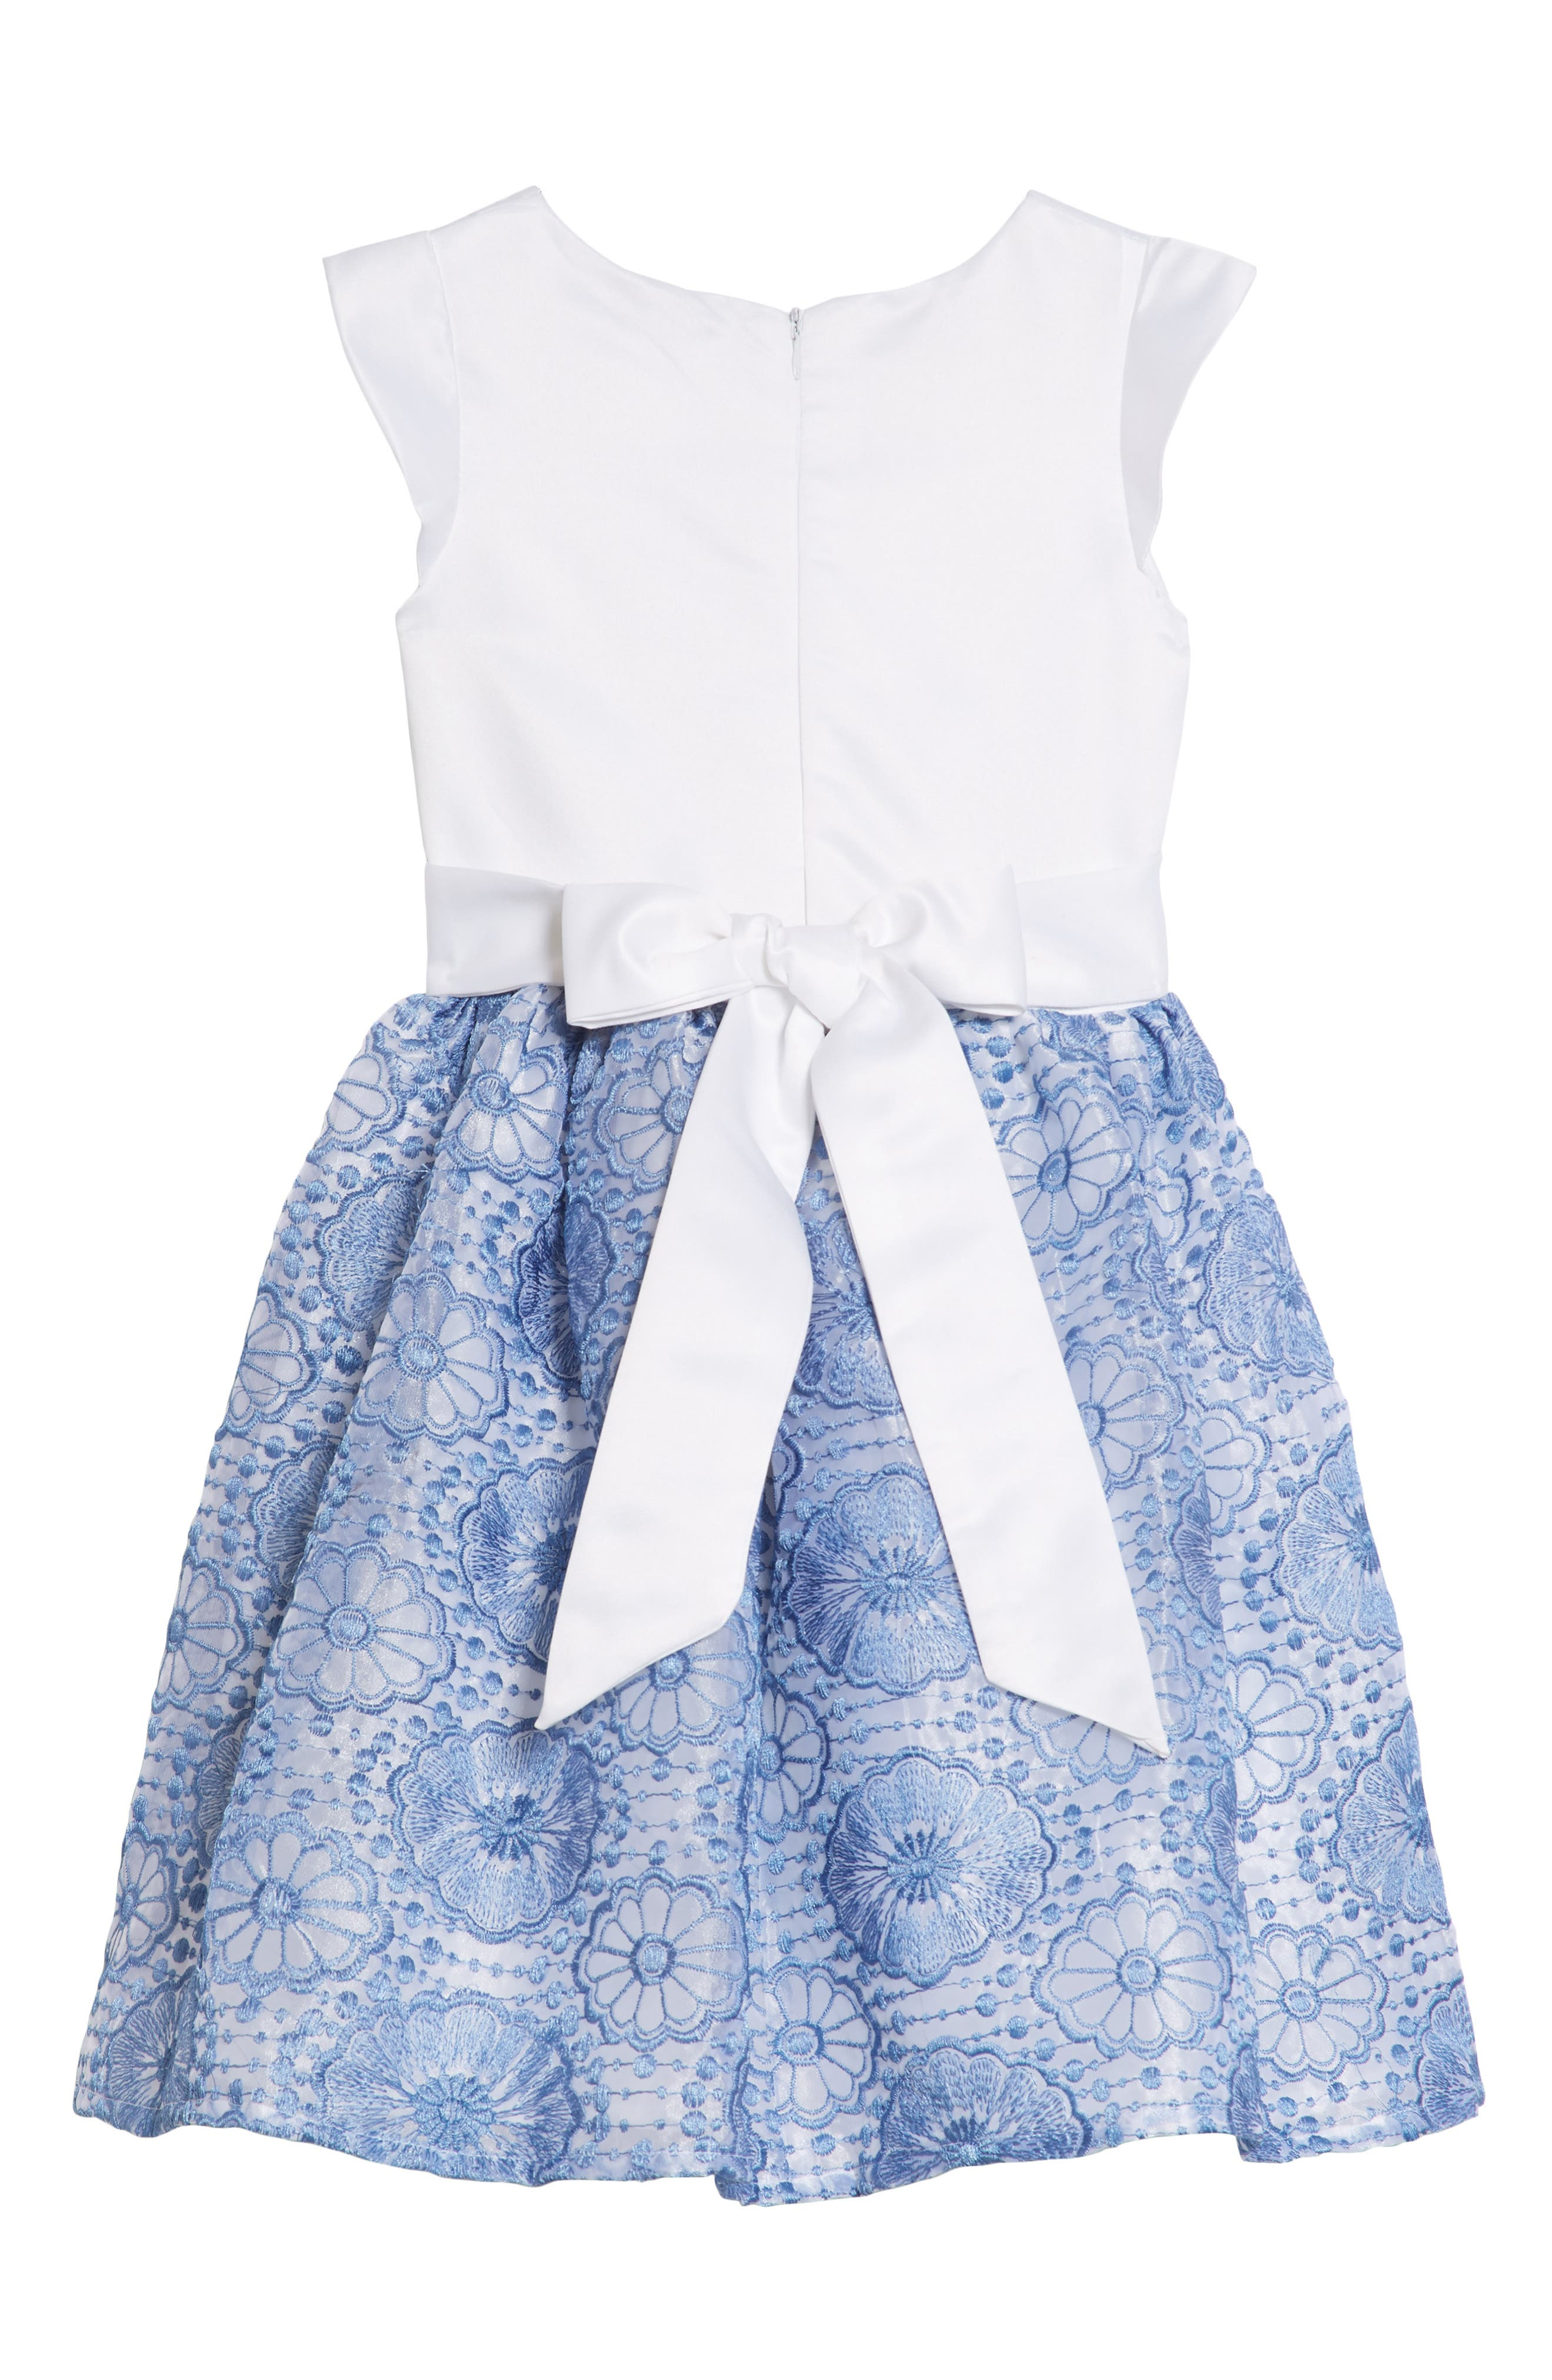 Lily Embroidered Dress,                             Alternate thumbnail 2, color,                             White/ Blue